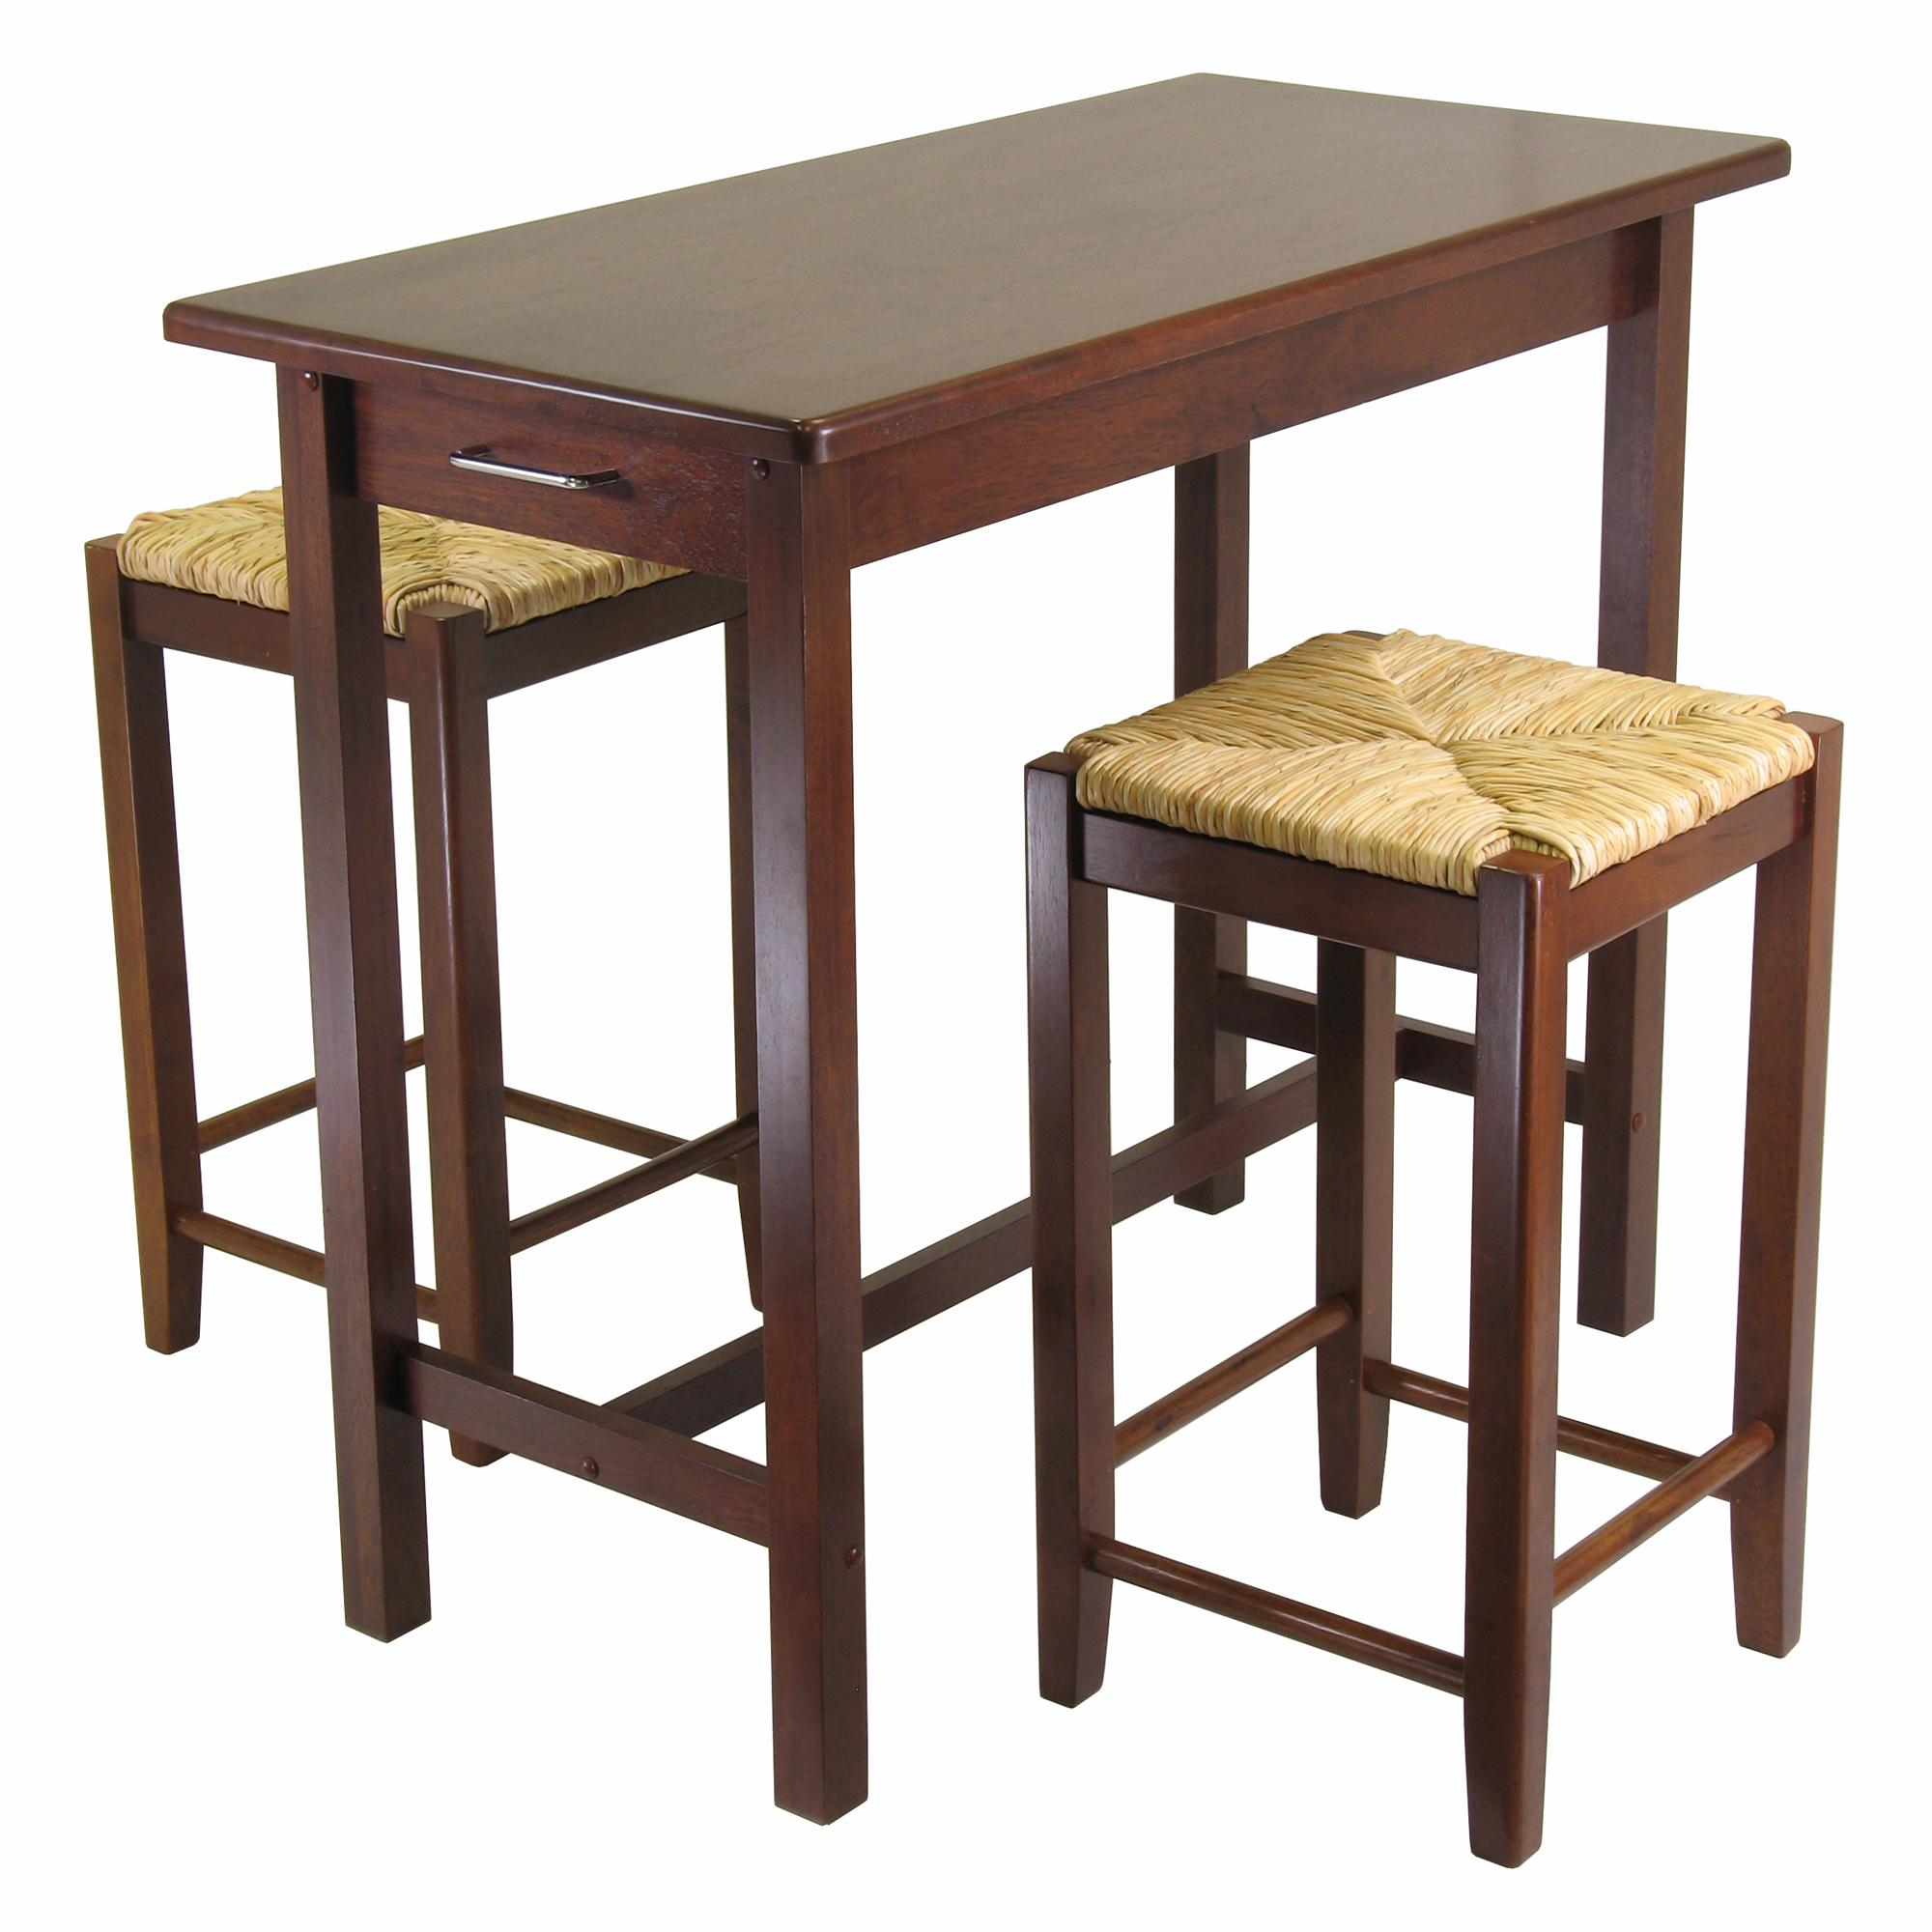 Kitchen Table And Chairs Amazon: Amazon.com: Winsome Kitchen Island Table With 2 Rush Seat